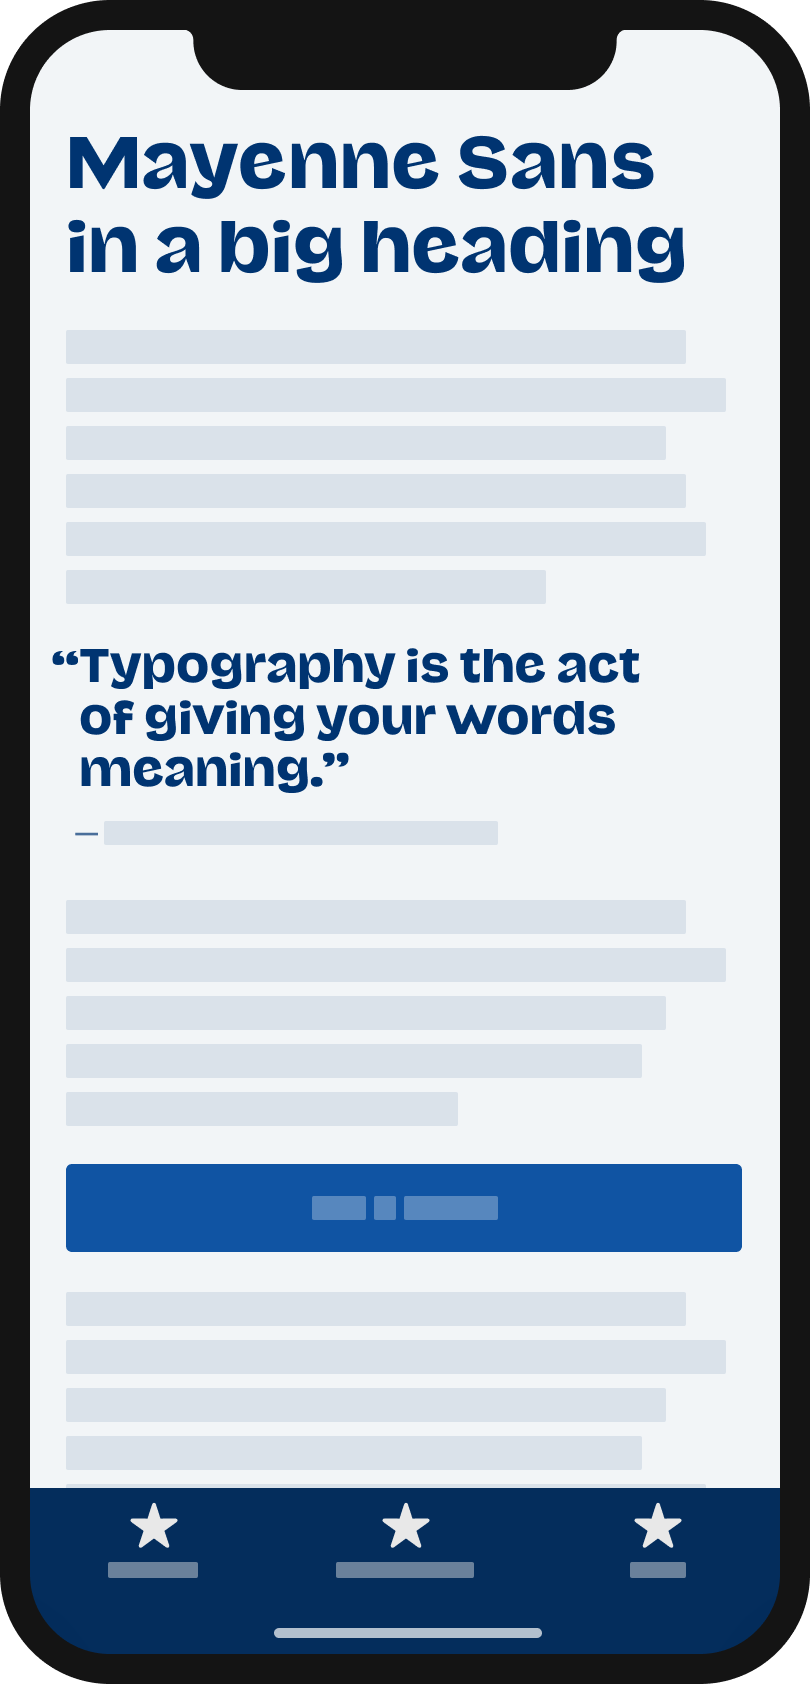 The quirky contrasting sans seir typeface Mayenne Sans  on a mobile phone in a headline and pull quote.